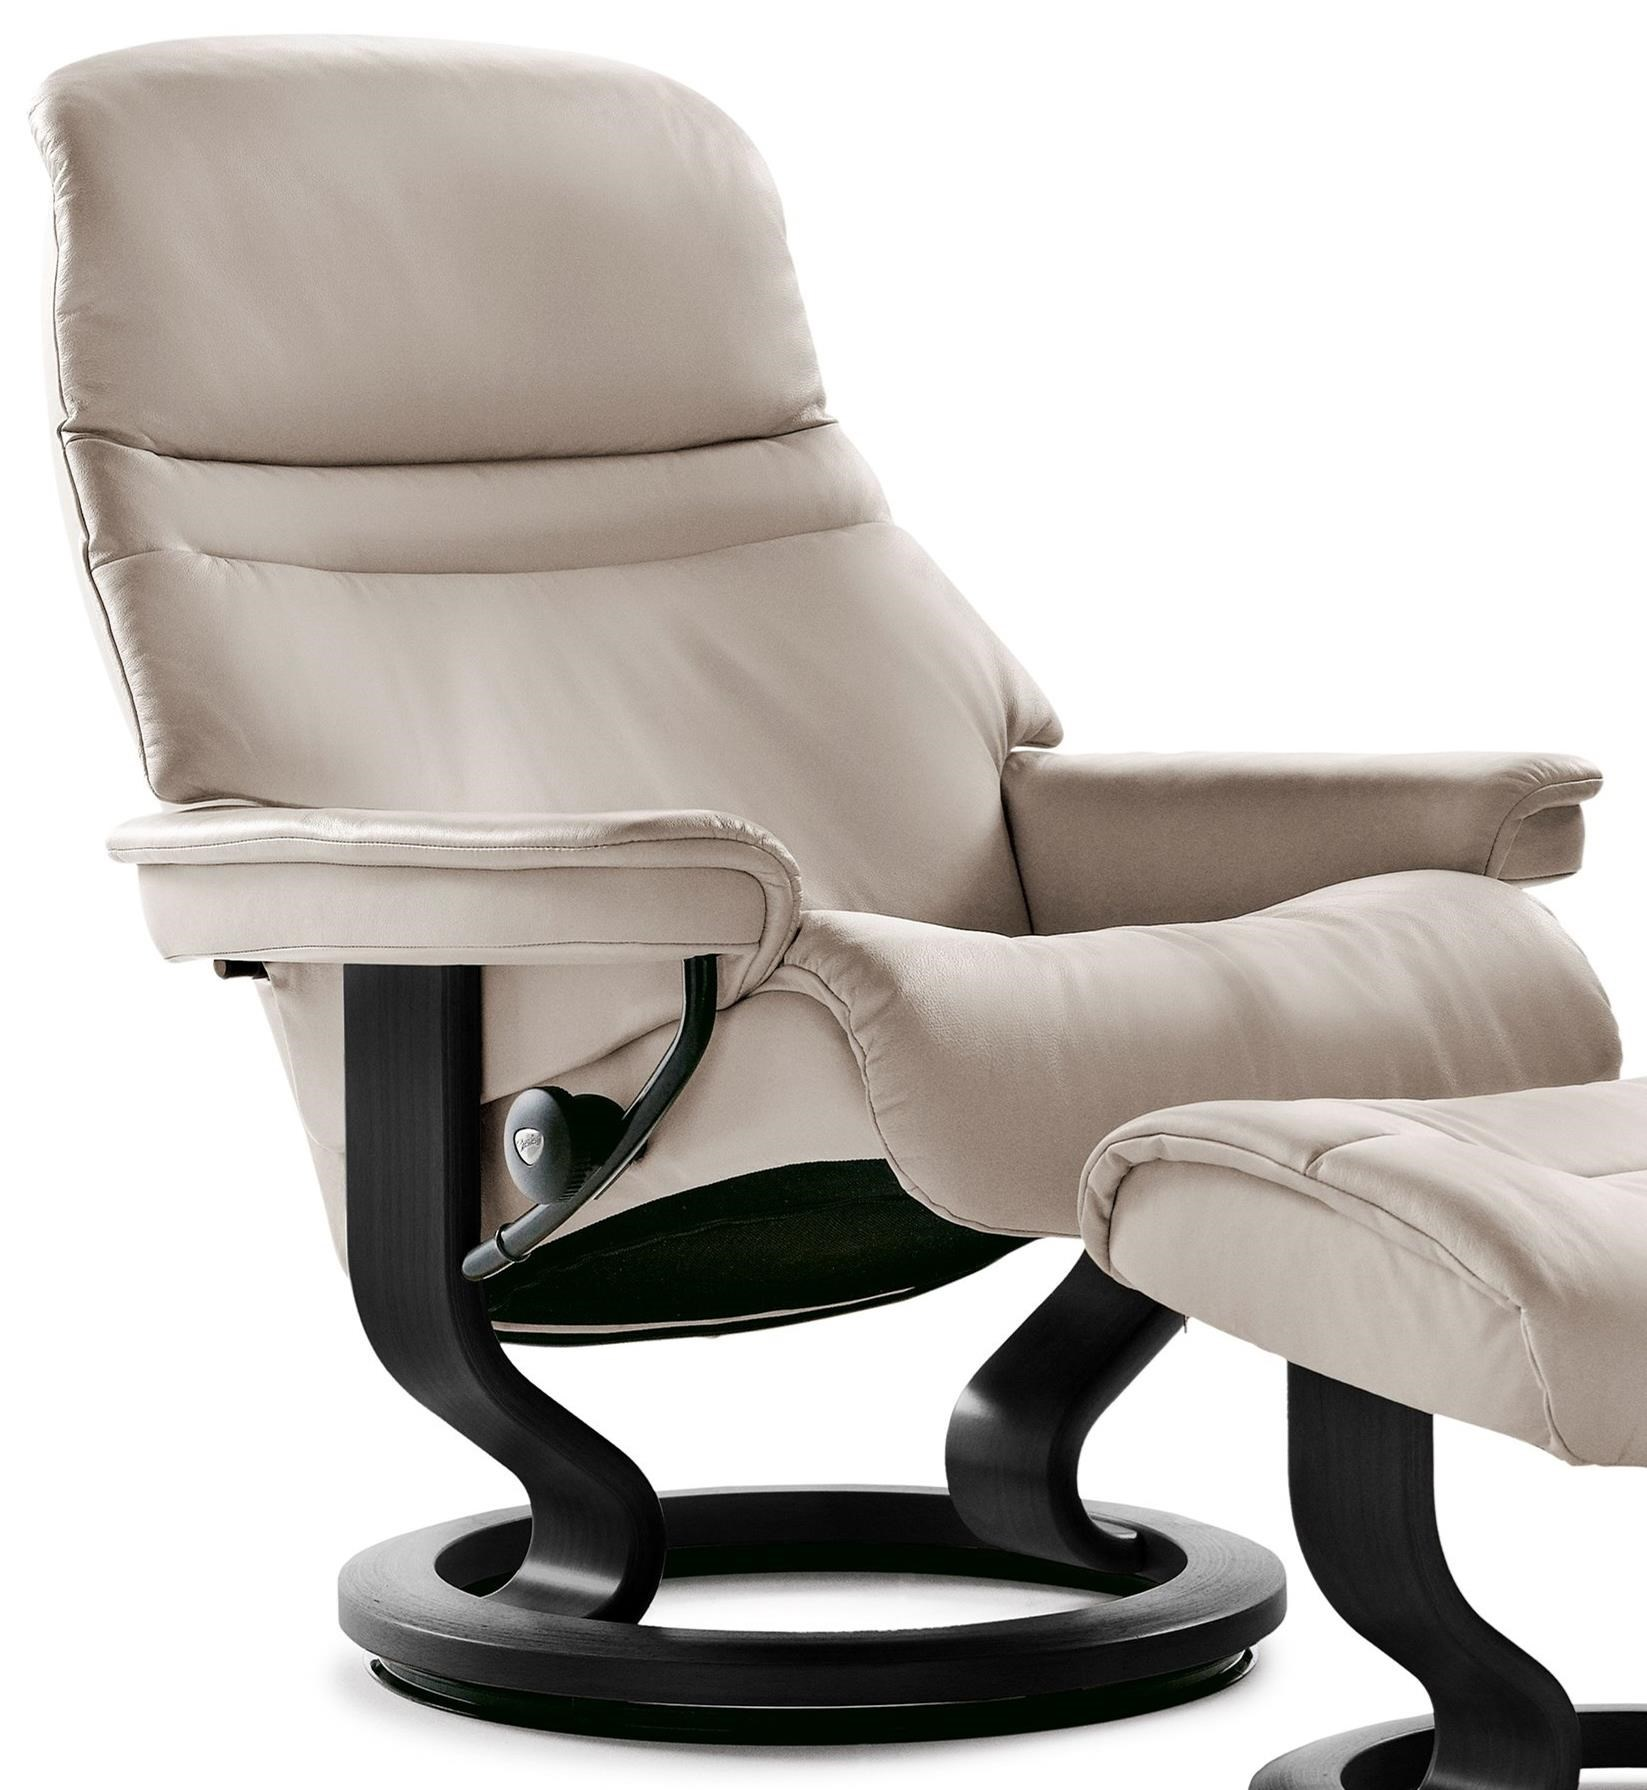 Stressless Sessel Sunrise.html Stressless Sunrise